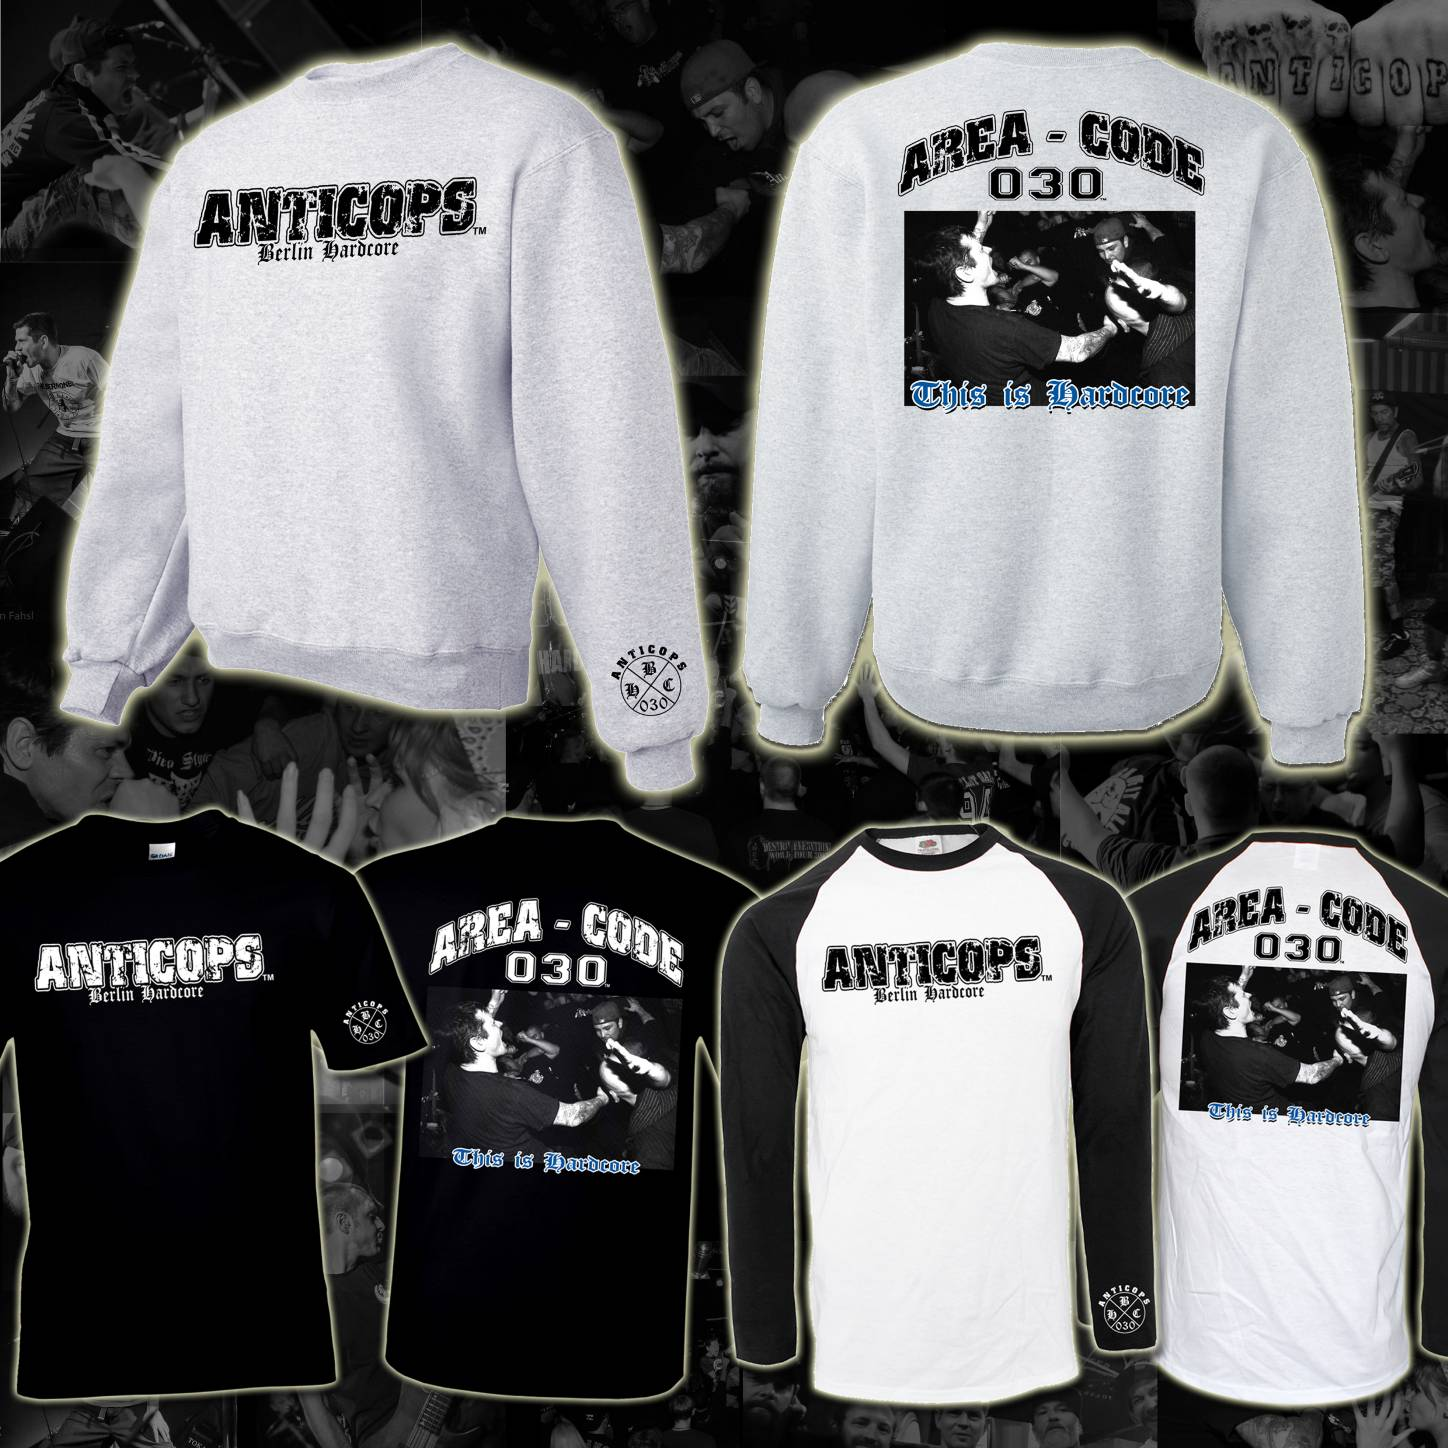 Anticops - This is Hardcore Bandmerchandise